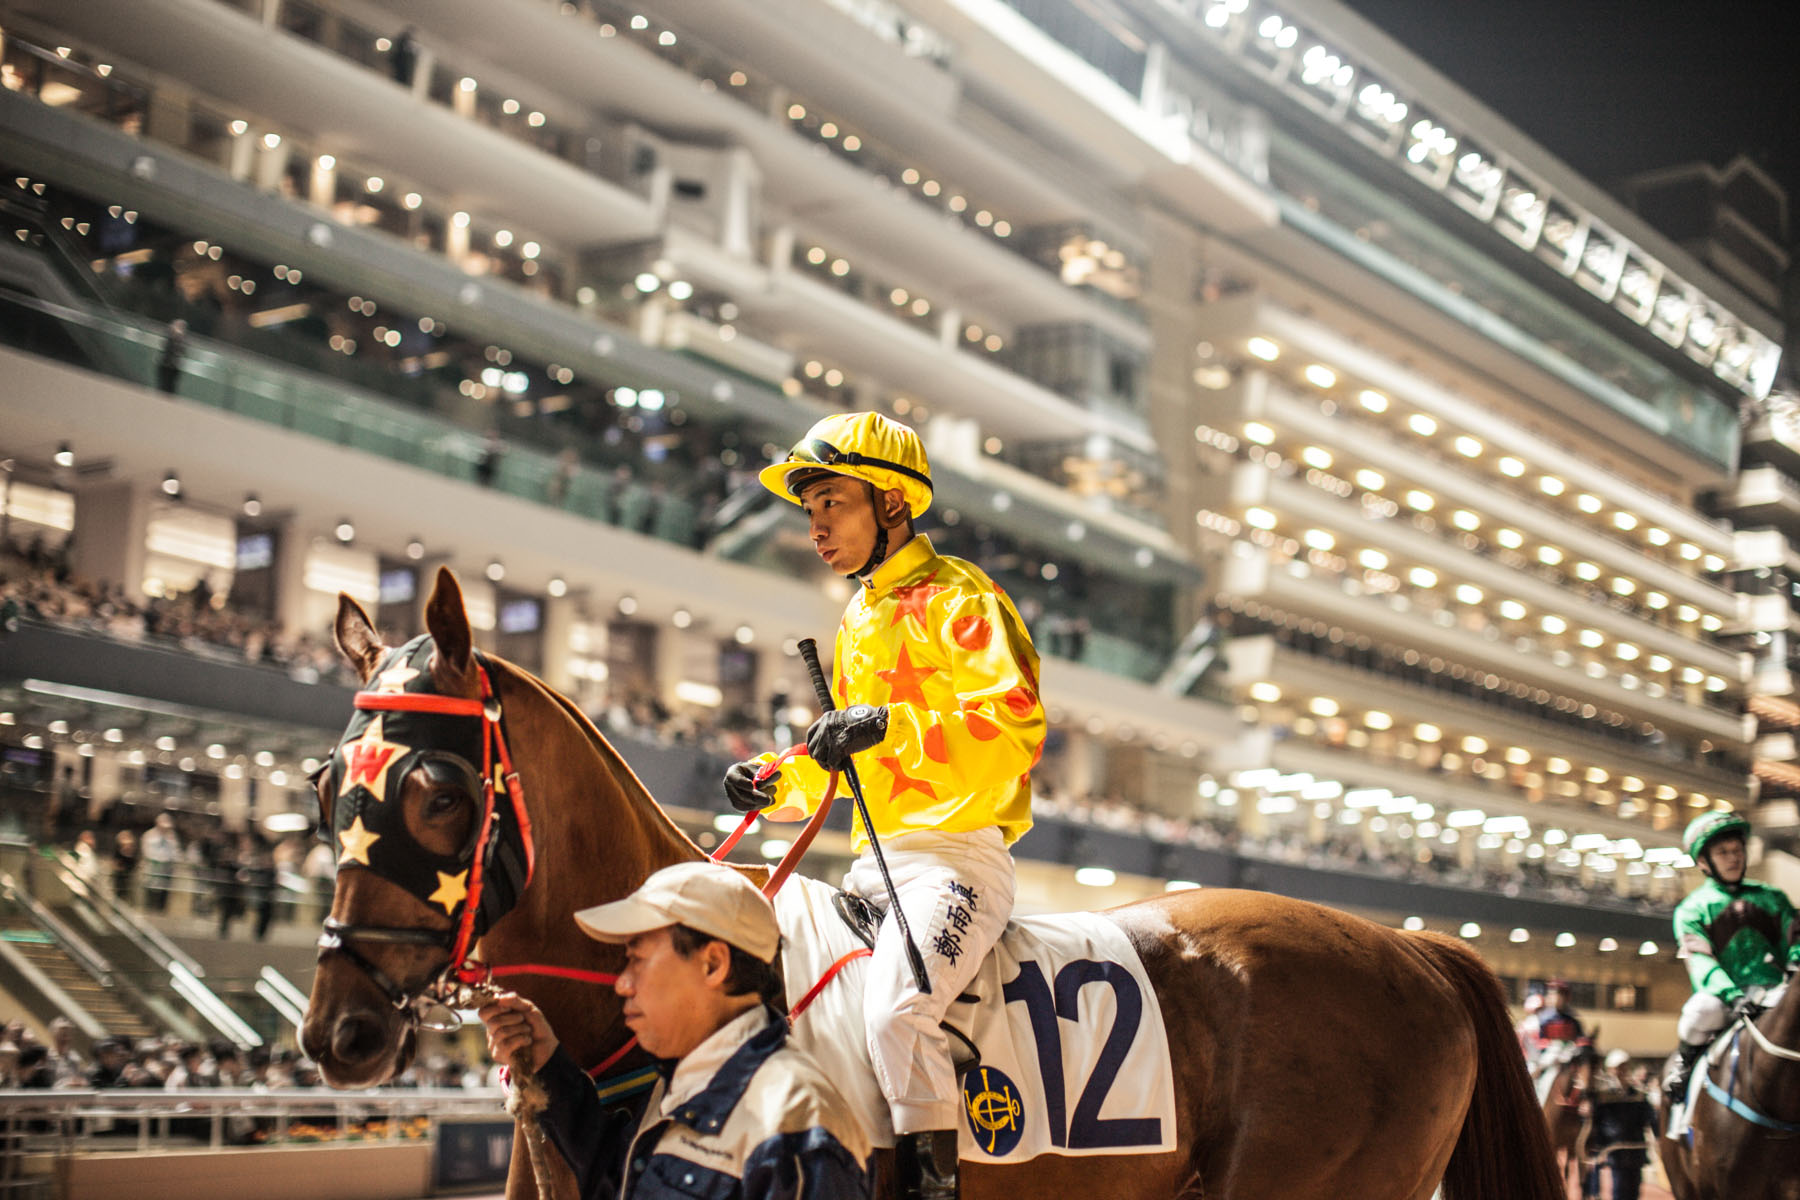 Jockey at Happy Valley in Hong Kong